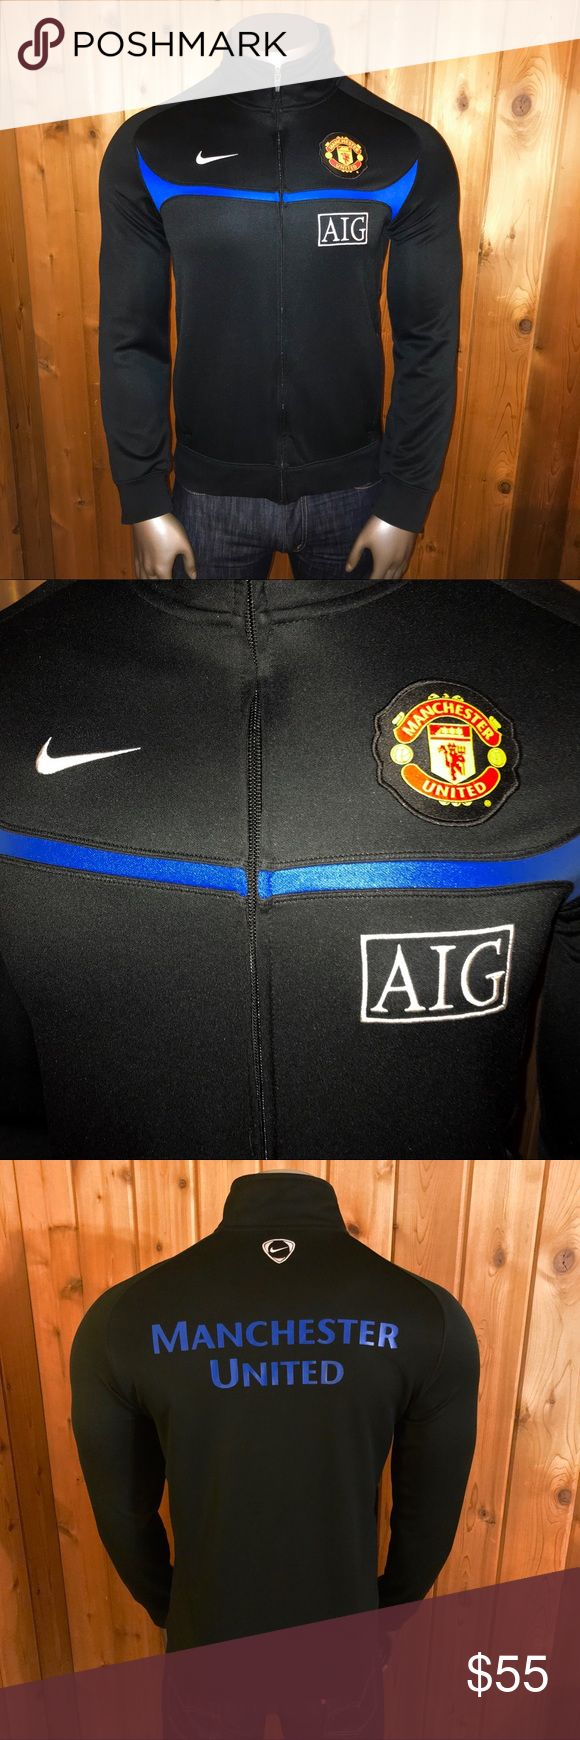 Official Nike Manchester United Training Jacket Size: U.S. Men's Large  Color: Black/Blue Brand: Nike Official Authentic Nike Manchester United FC Football/Soccer Training Full Zip Track Jacket  Excellent Condition! No rips, stains, tears, pulls, pills, fading or cracking.  Jacket comes from a smoke and pet free home  Thanks for looking! Nike Jackets & Coats Performance Jackets